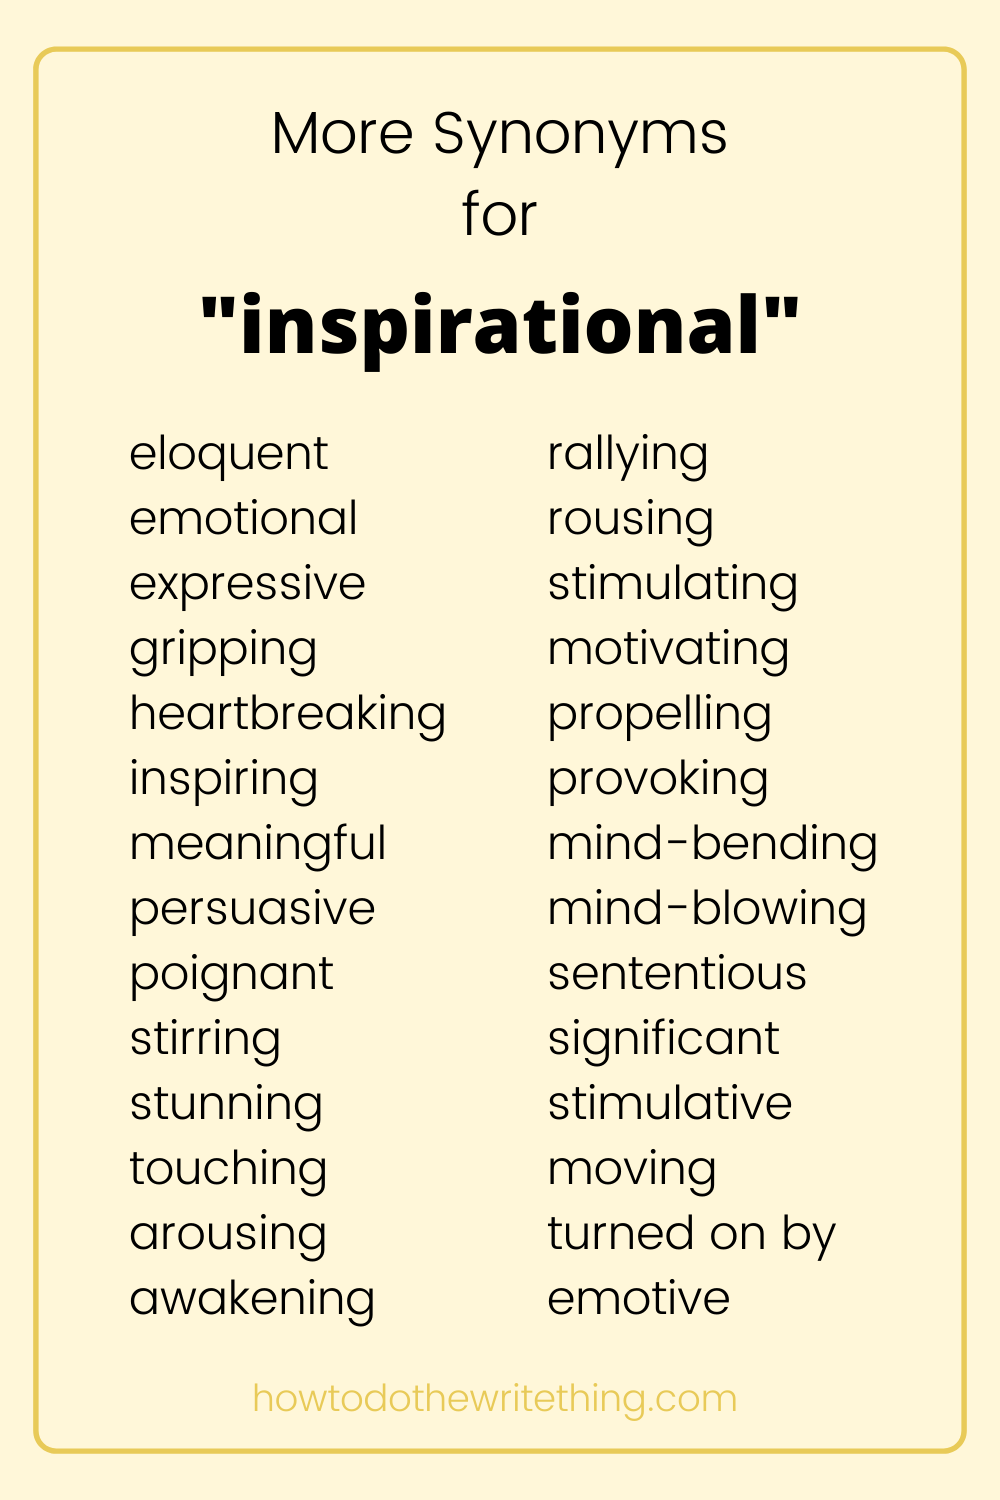 More Synonyms for